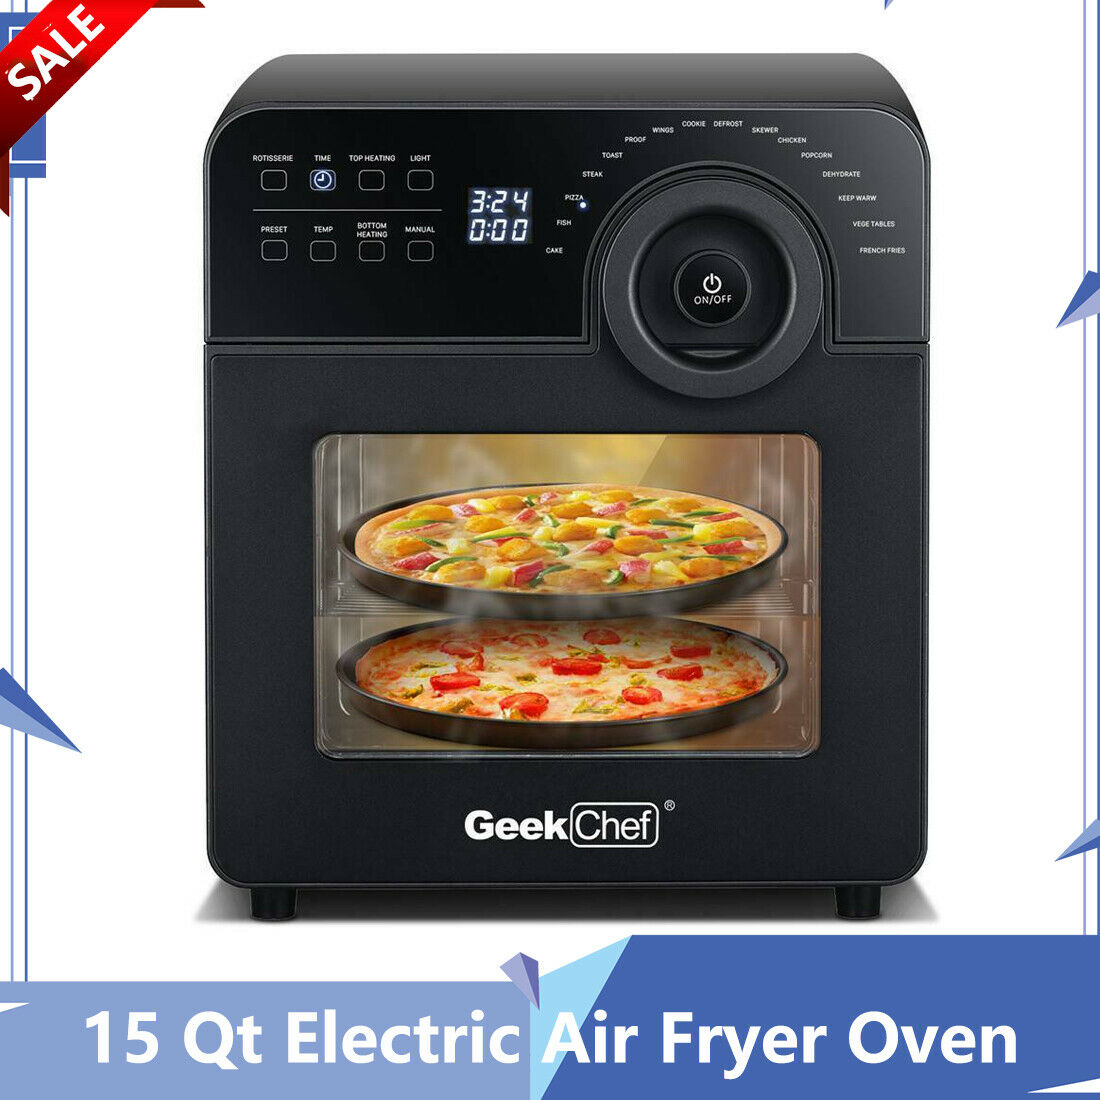 15 Qt Electric Air Fryer Oven Toaster Kitchen Fry Oil Free Roast Portable New